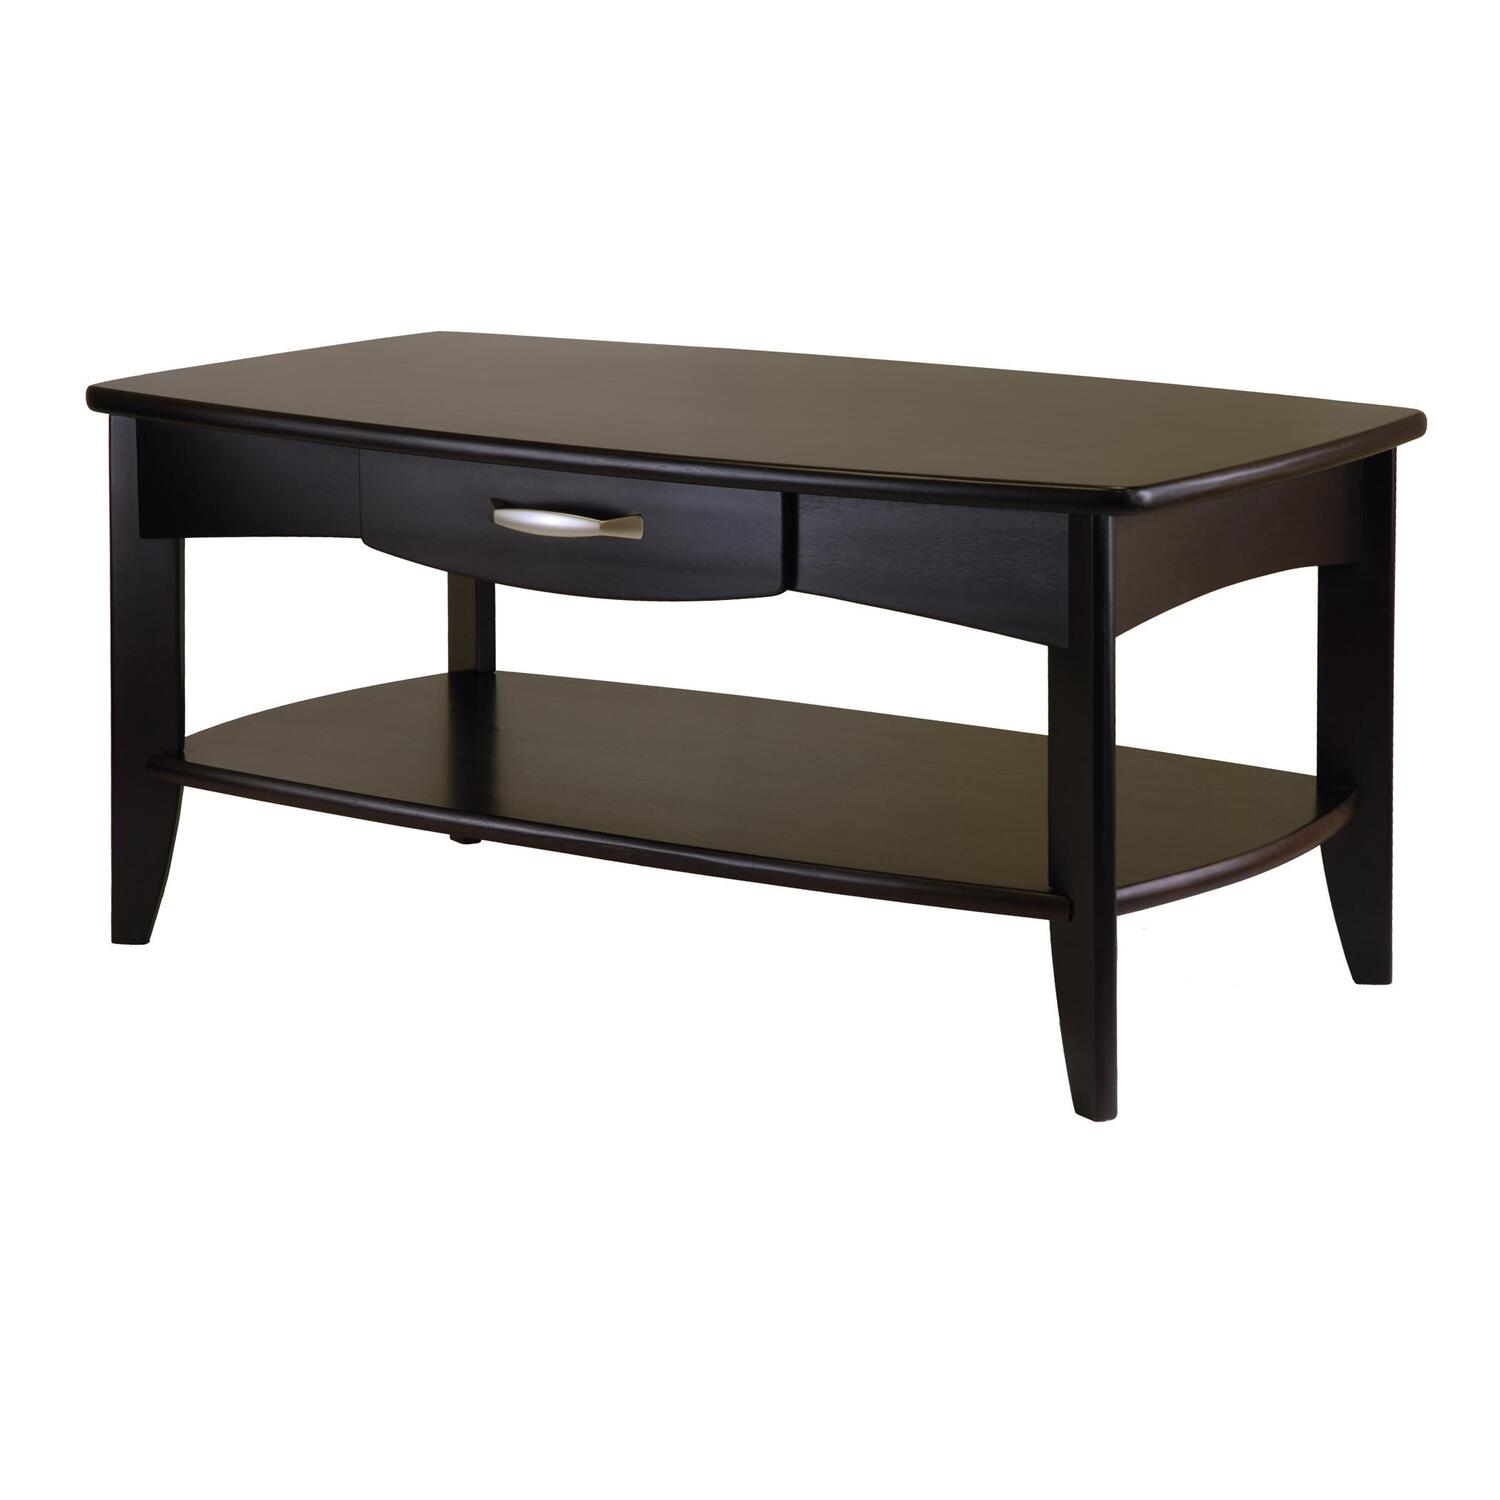 Winsome Danica Coffee Table By OJ Commerce 92839